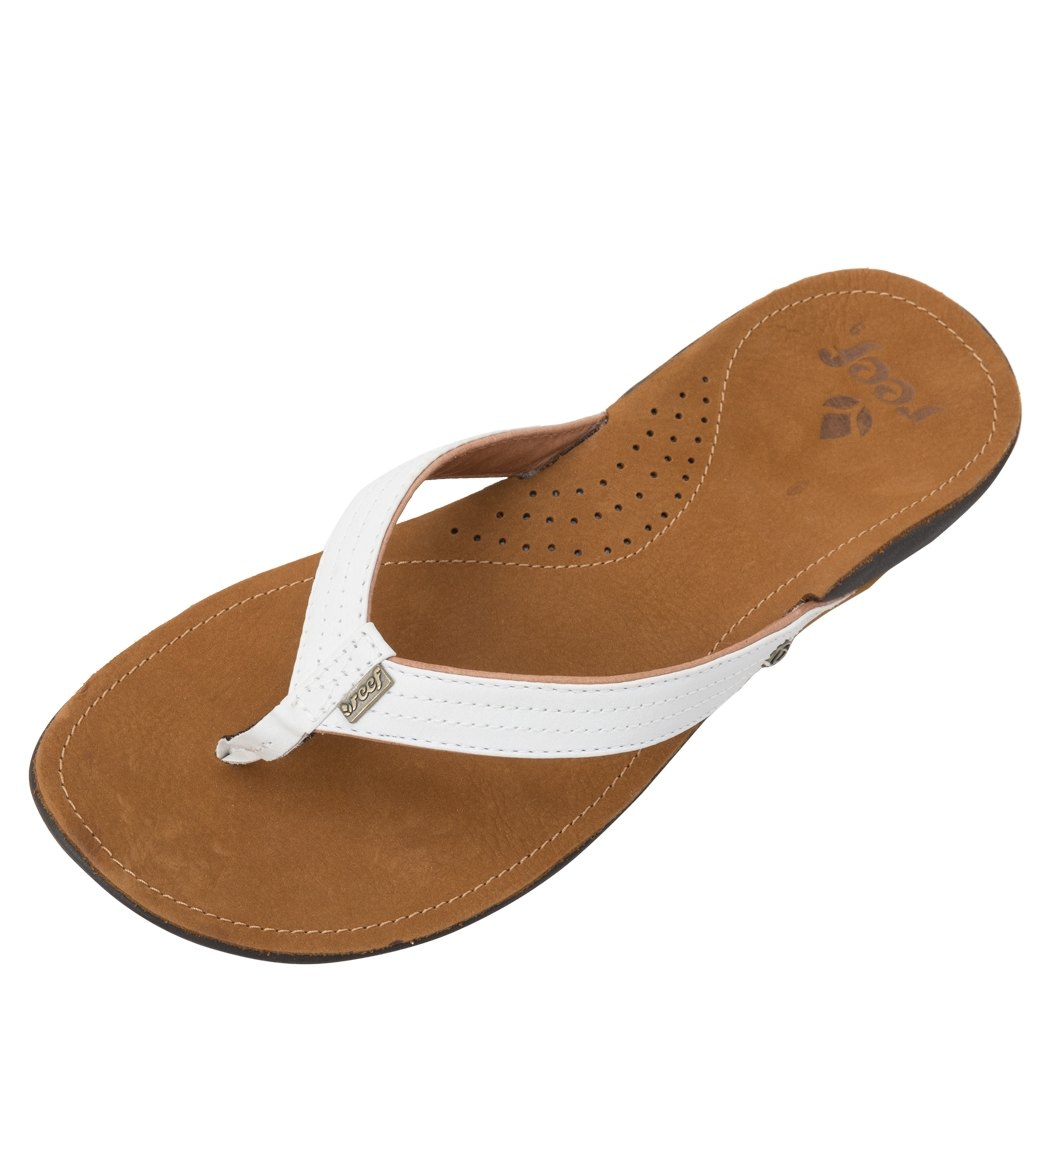 dd46df1df652 Reef Women s Miss J-Bay Flip Flop at SwimOutlet.com - Free Shipping